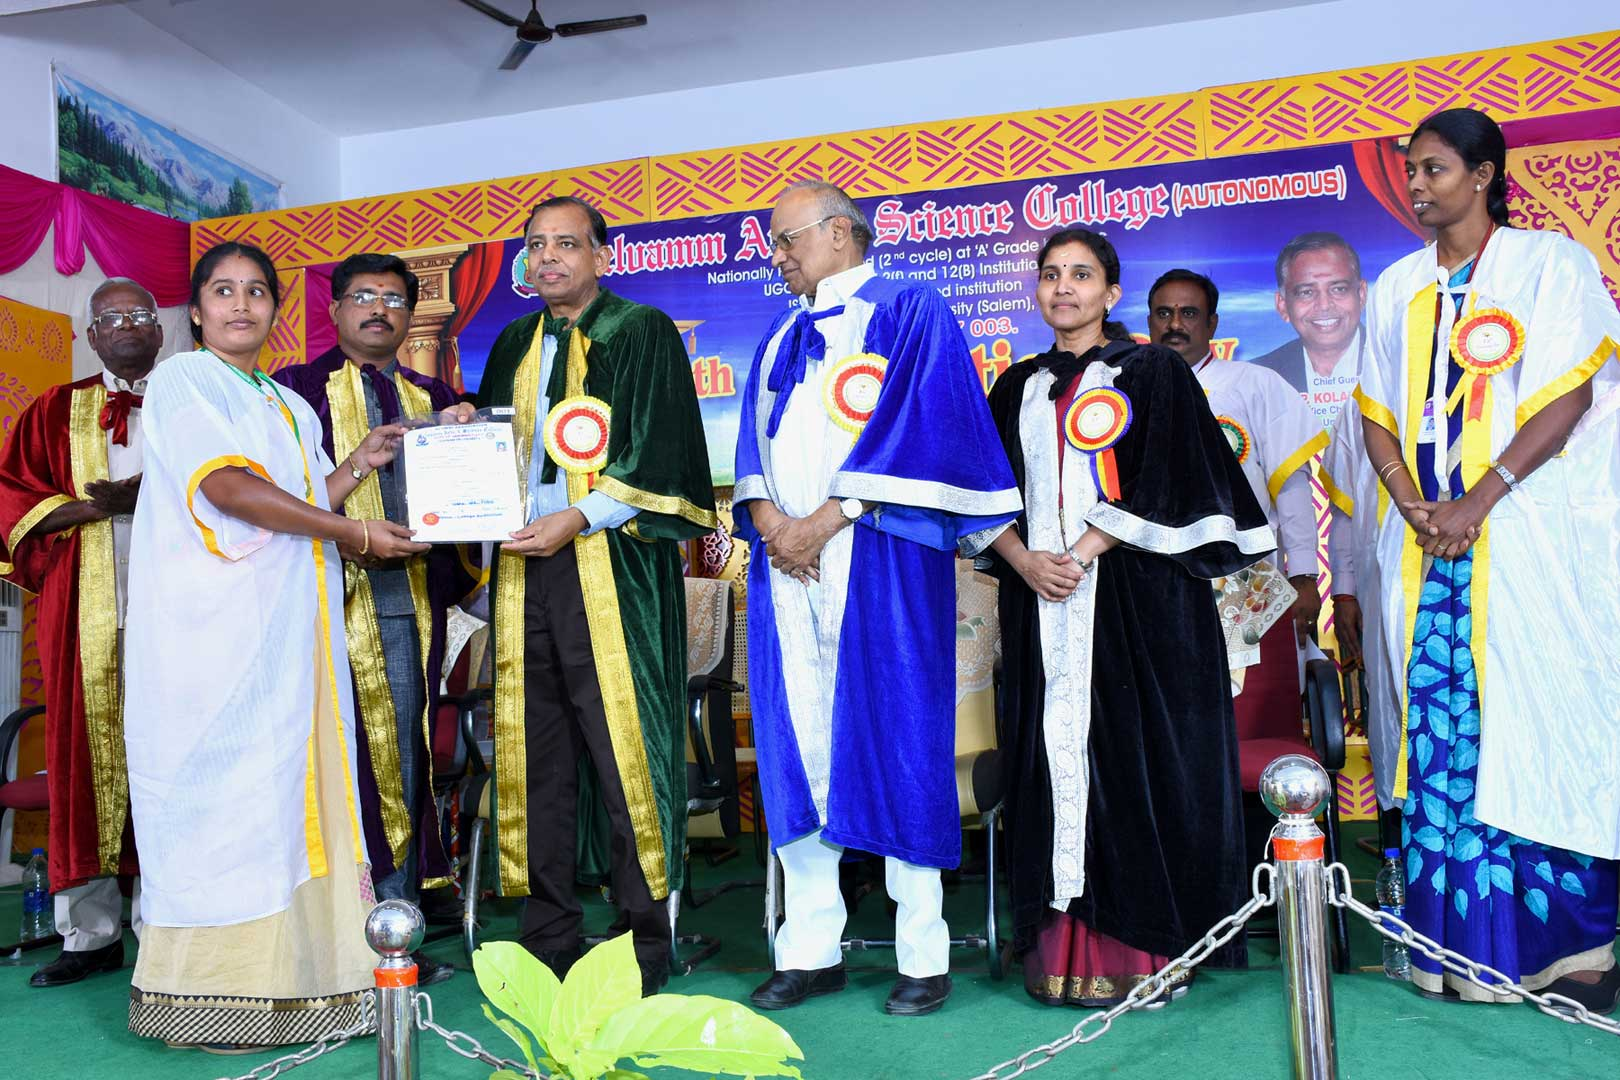 15th Convocation Ceremony held on 05.01.2019 @ College Premises.